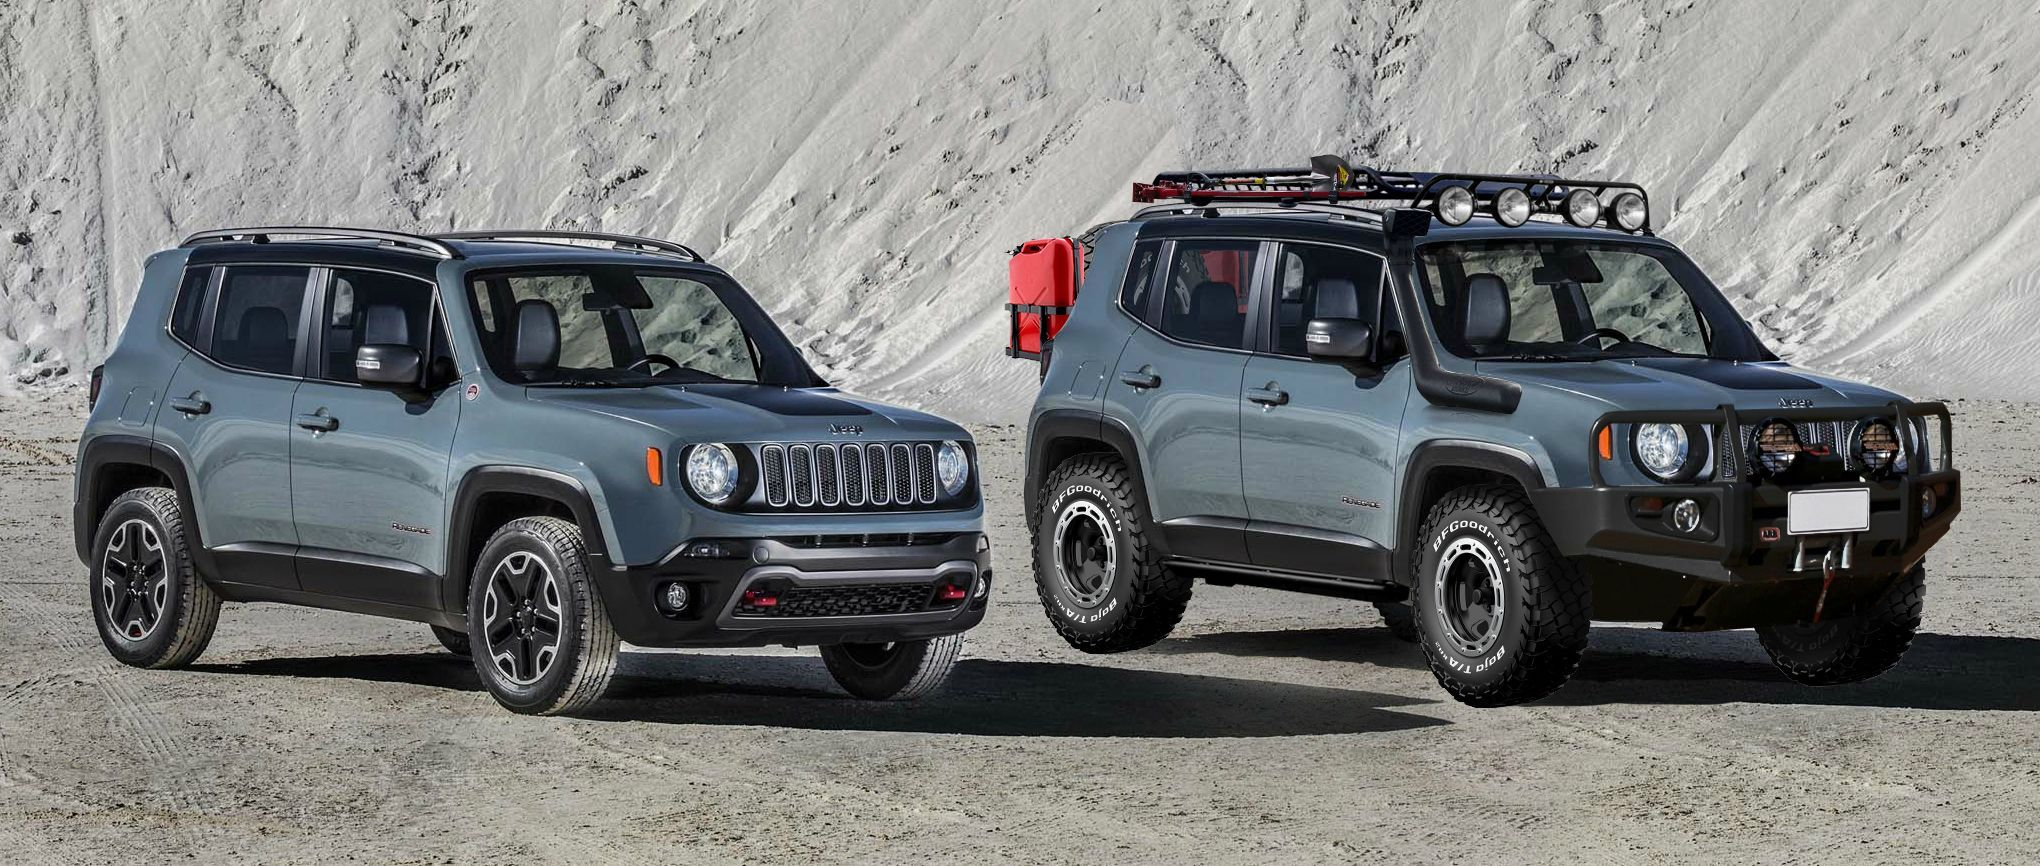 The Renegade We Want Jeep Renegade Forum Www Thompsonschryslerdodgejeepram Com Jeep Renegade Jeep Renegade Trailhawk Jeep Trailhawk